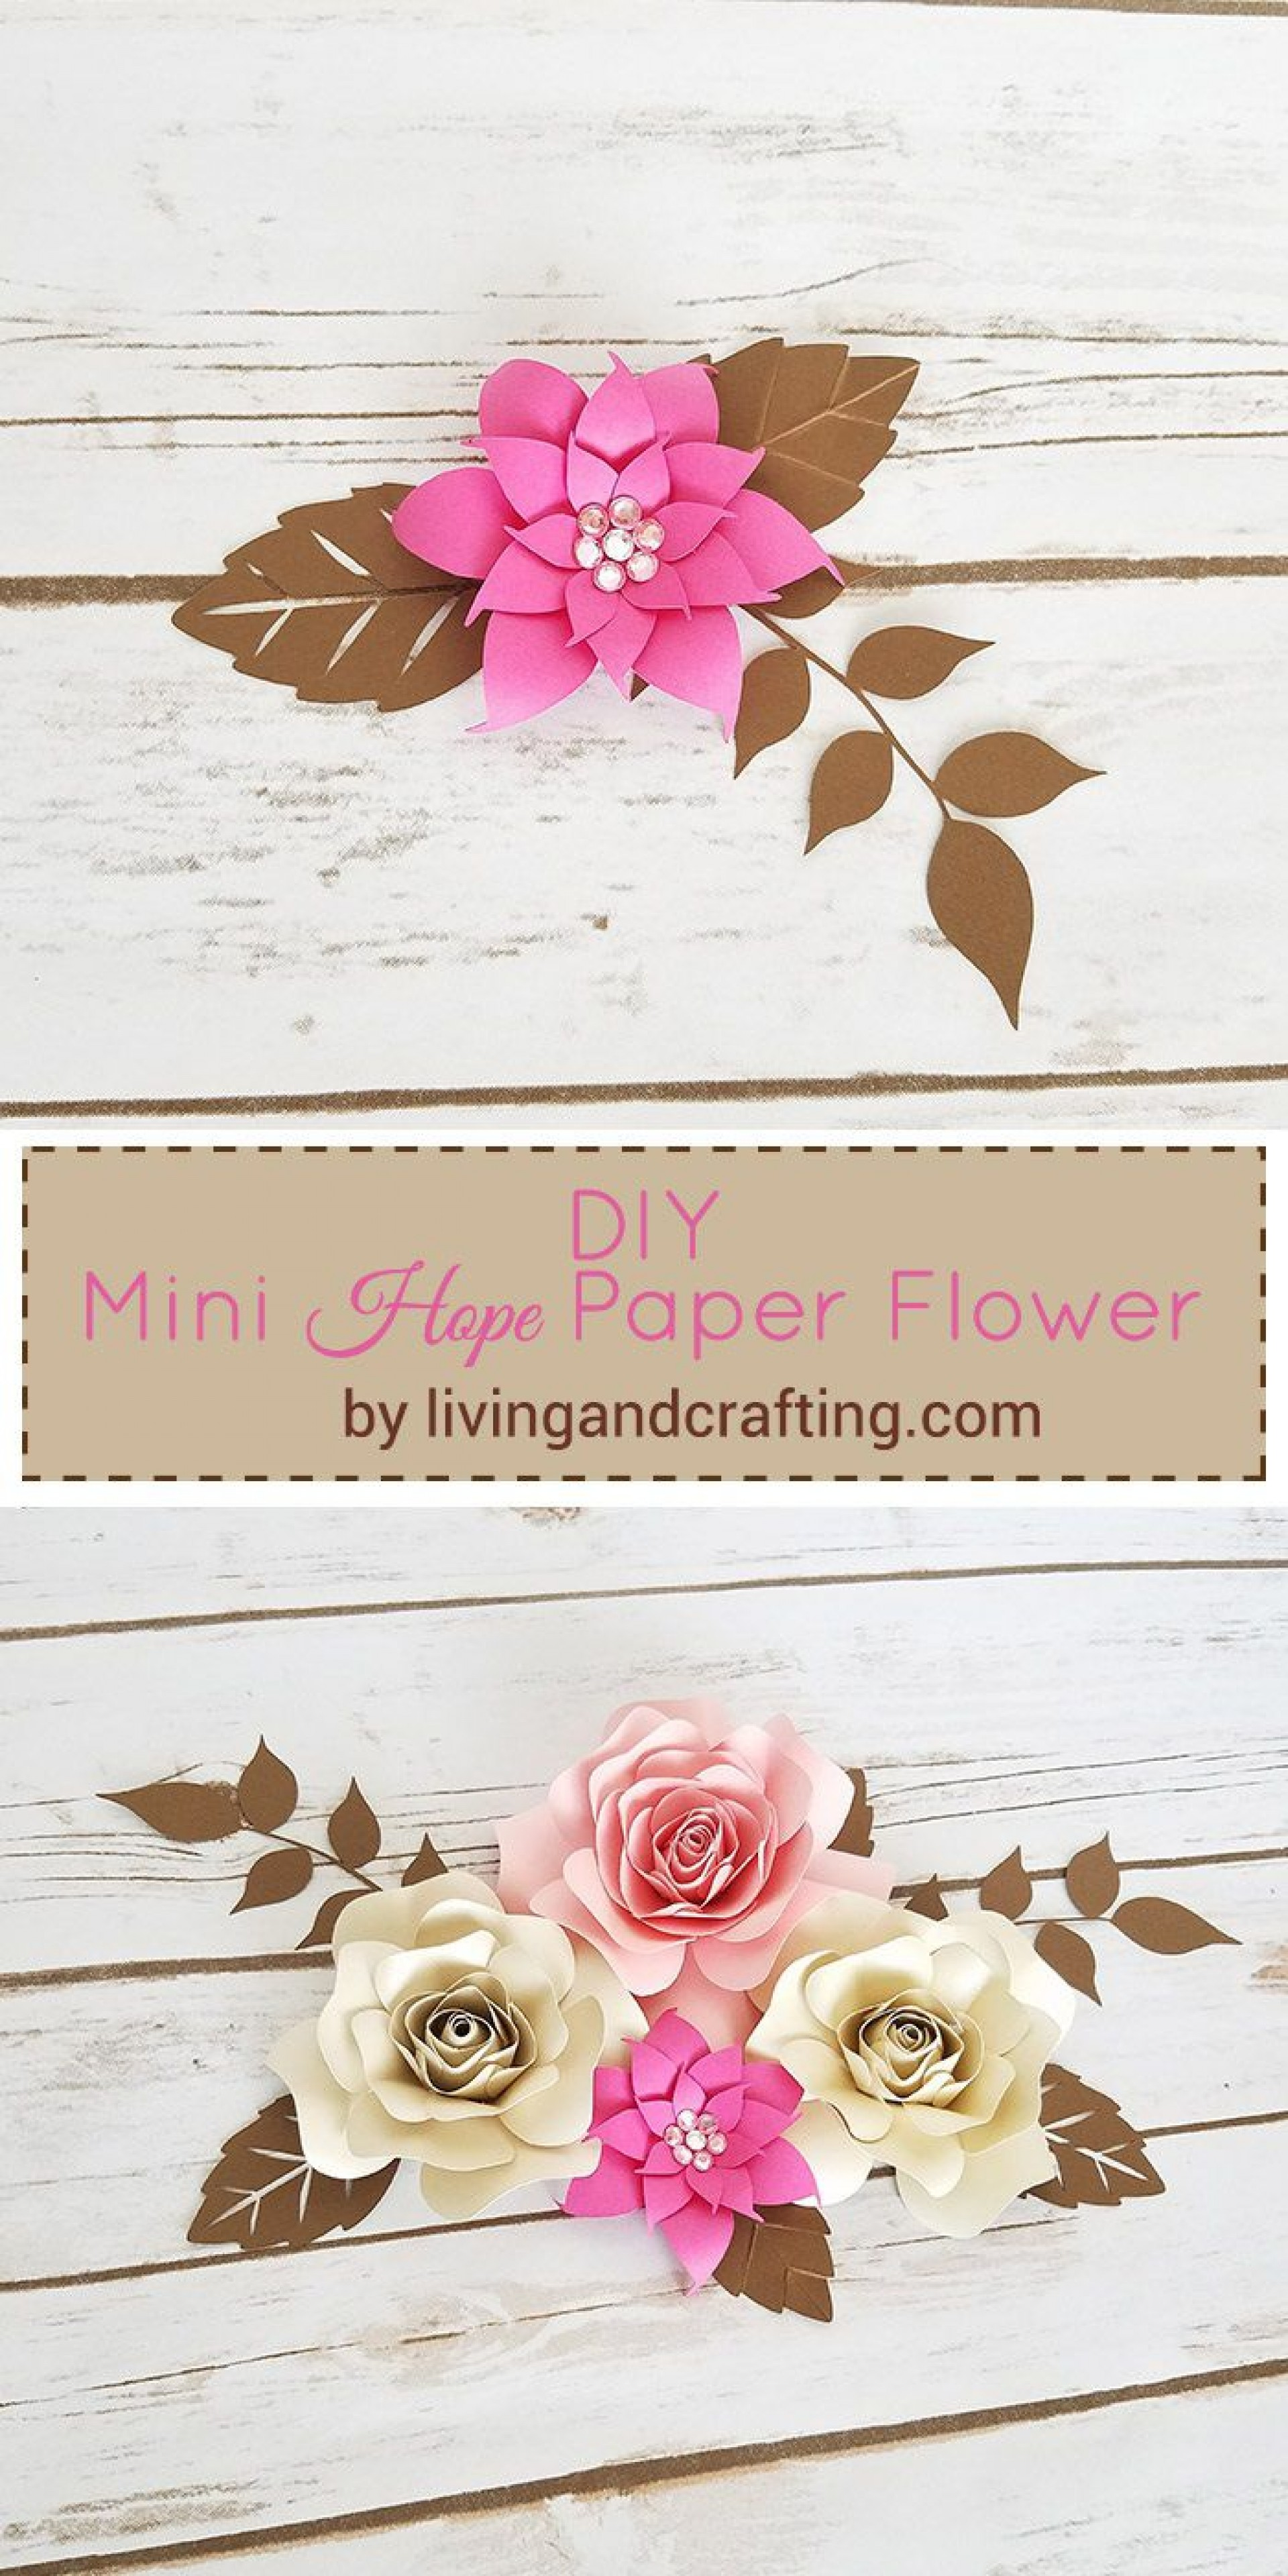 007 Phenomenal Free Small Paper Flower Petal Template Highest Quality  Templates1920